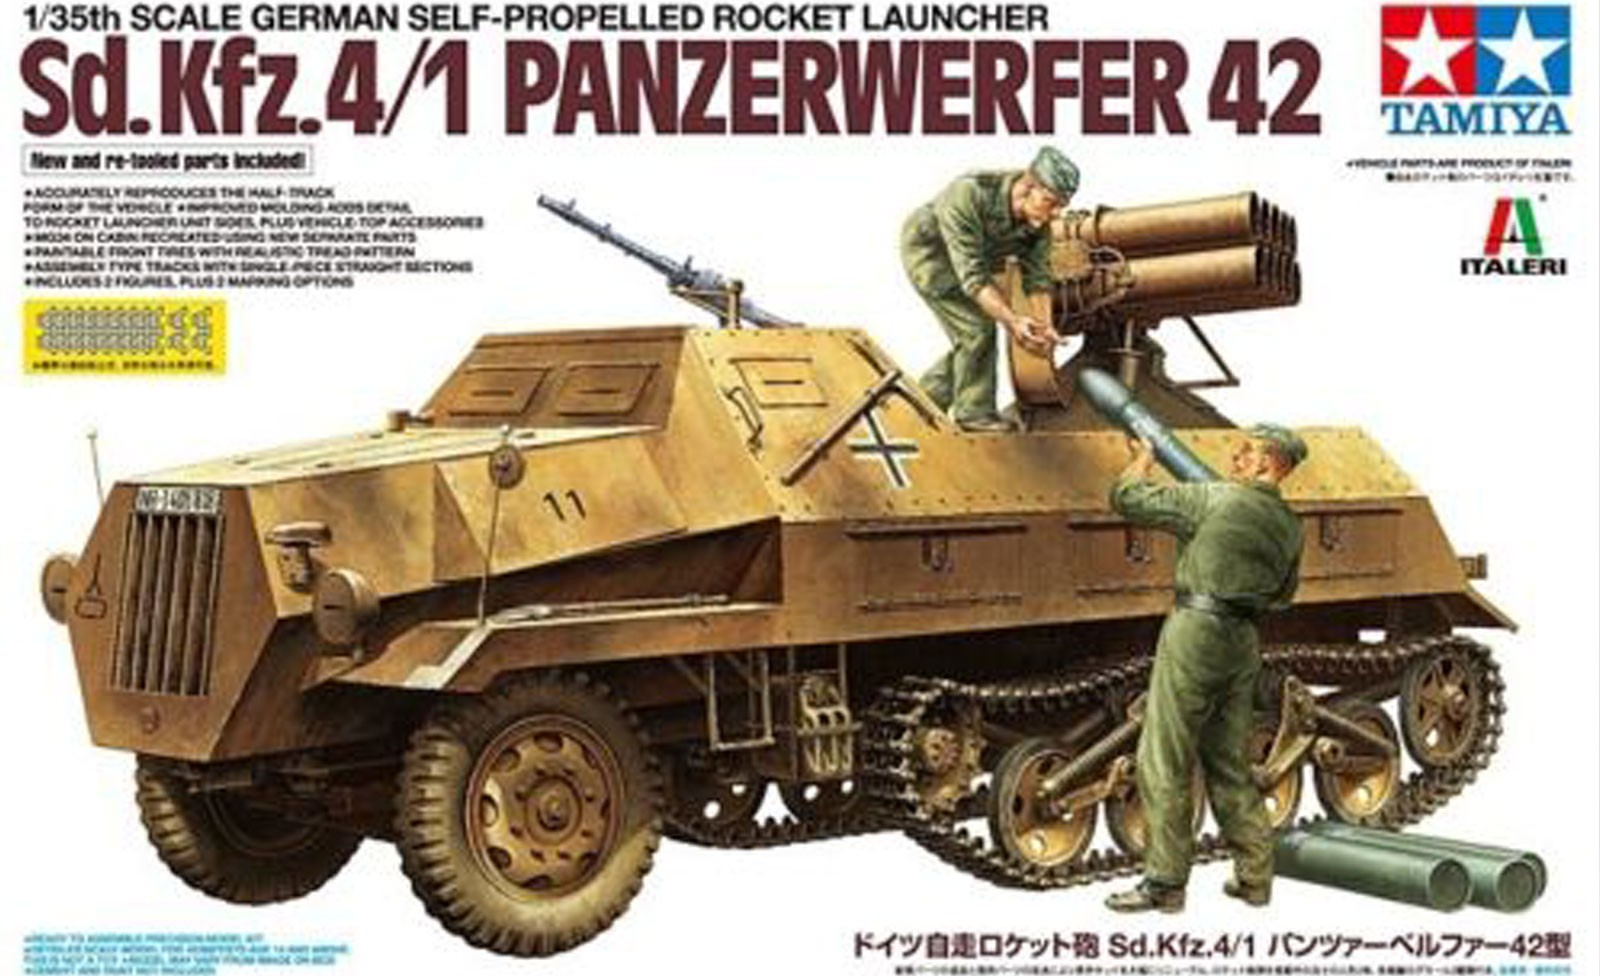 German Self-Propelled Rocket Launcher - Sd.Kfz.4/1 Panzerwerfer 42 - Tamiya 35017 - plastic model kit - 1/35 scale